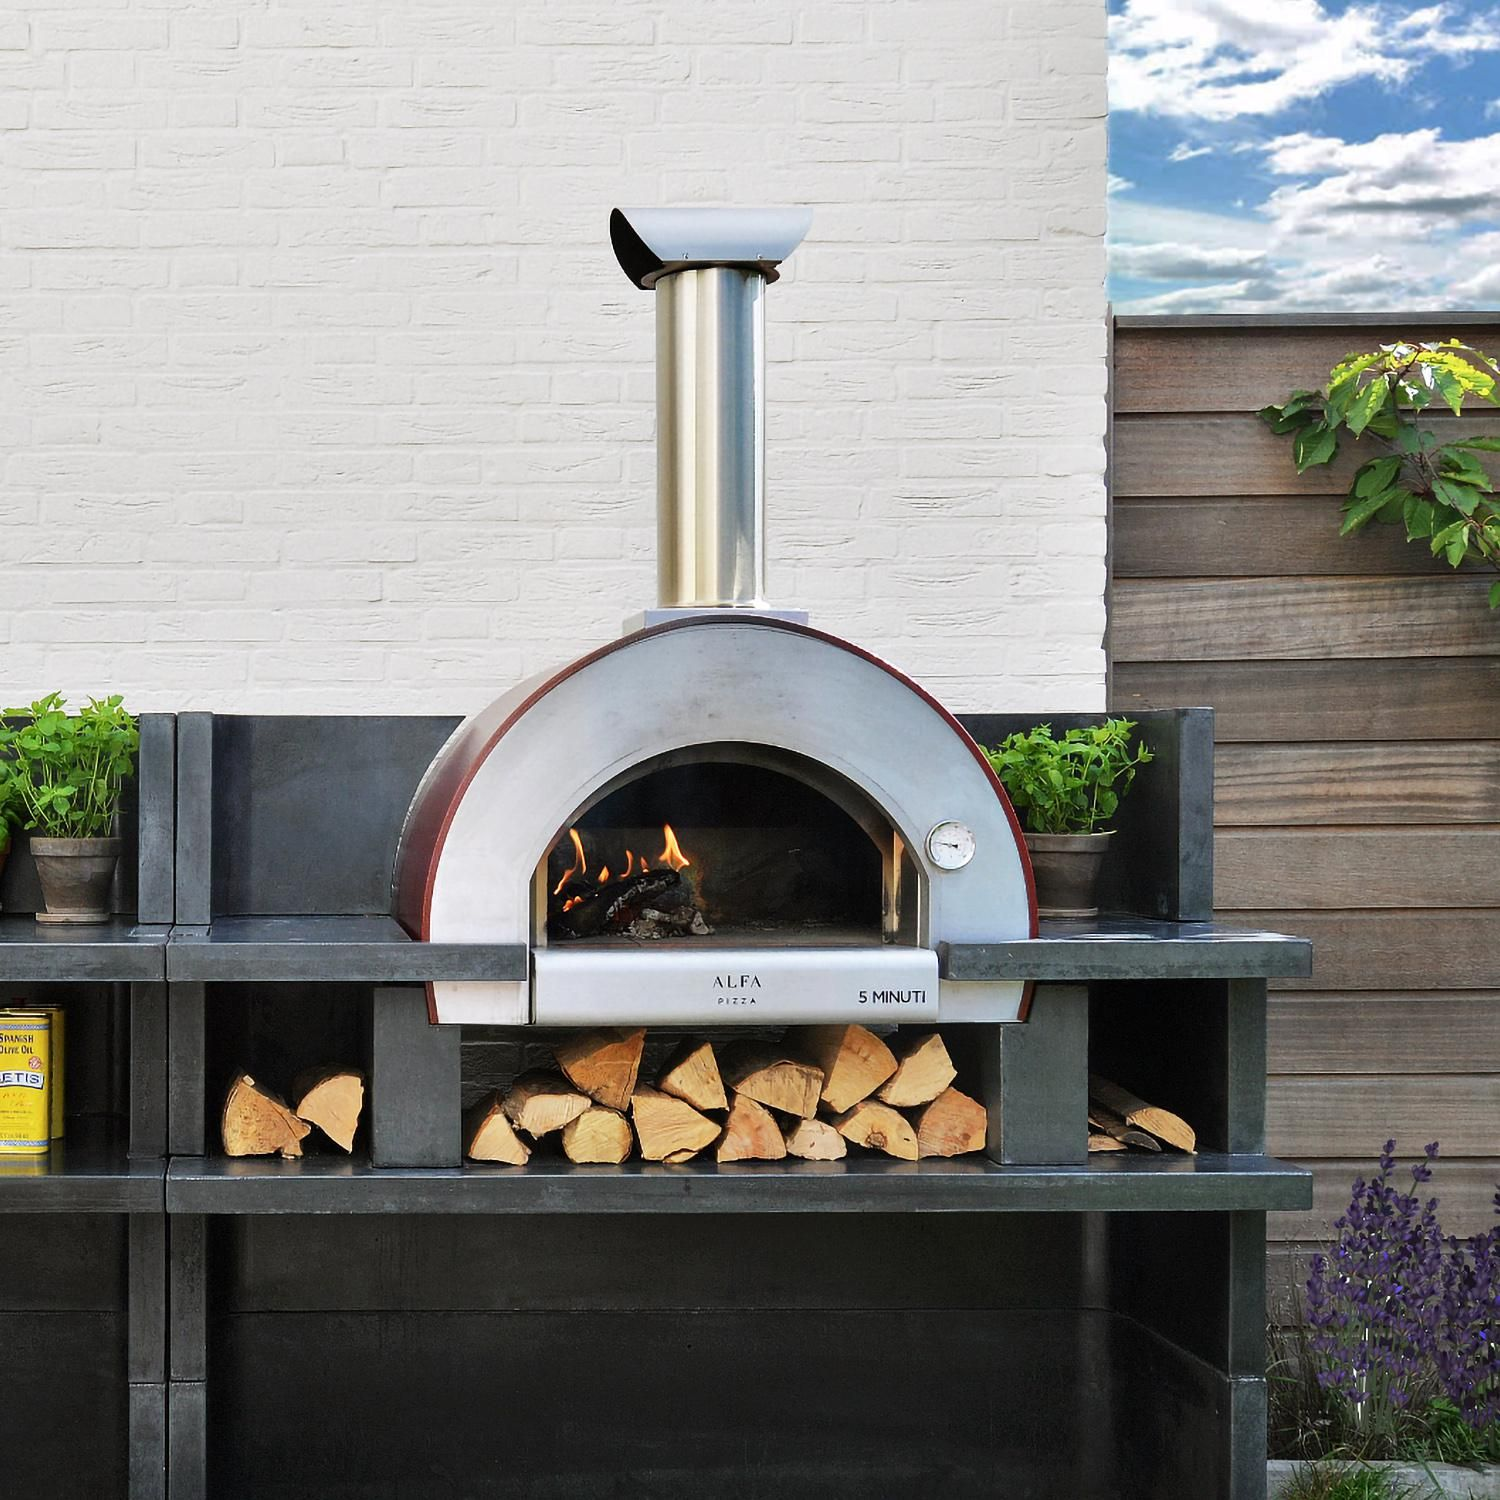 Alfa 5 Minuti 23 Inch Outdoor Countertop Wood Fired Pizza Oven